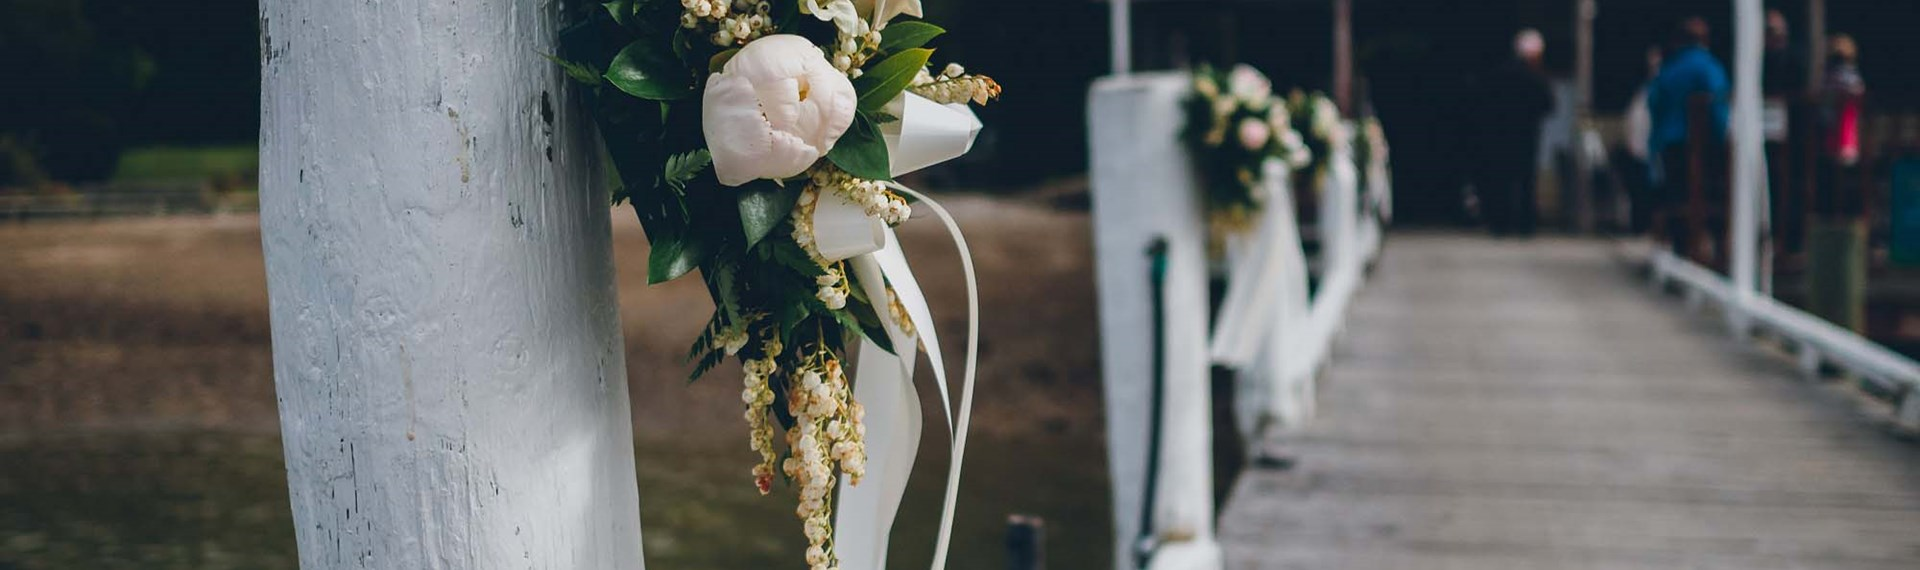 Beautiful floral bouquets are tied to the Punga Cove jetty to welcome guests for a wedding in Endeavour Inlet in the Marlborough Sounds, New Zealand